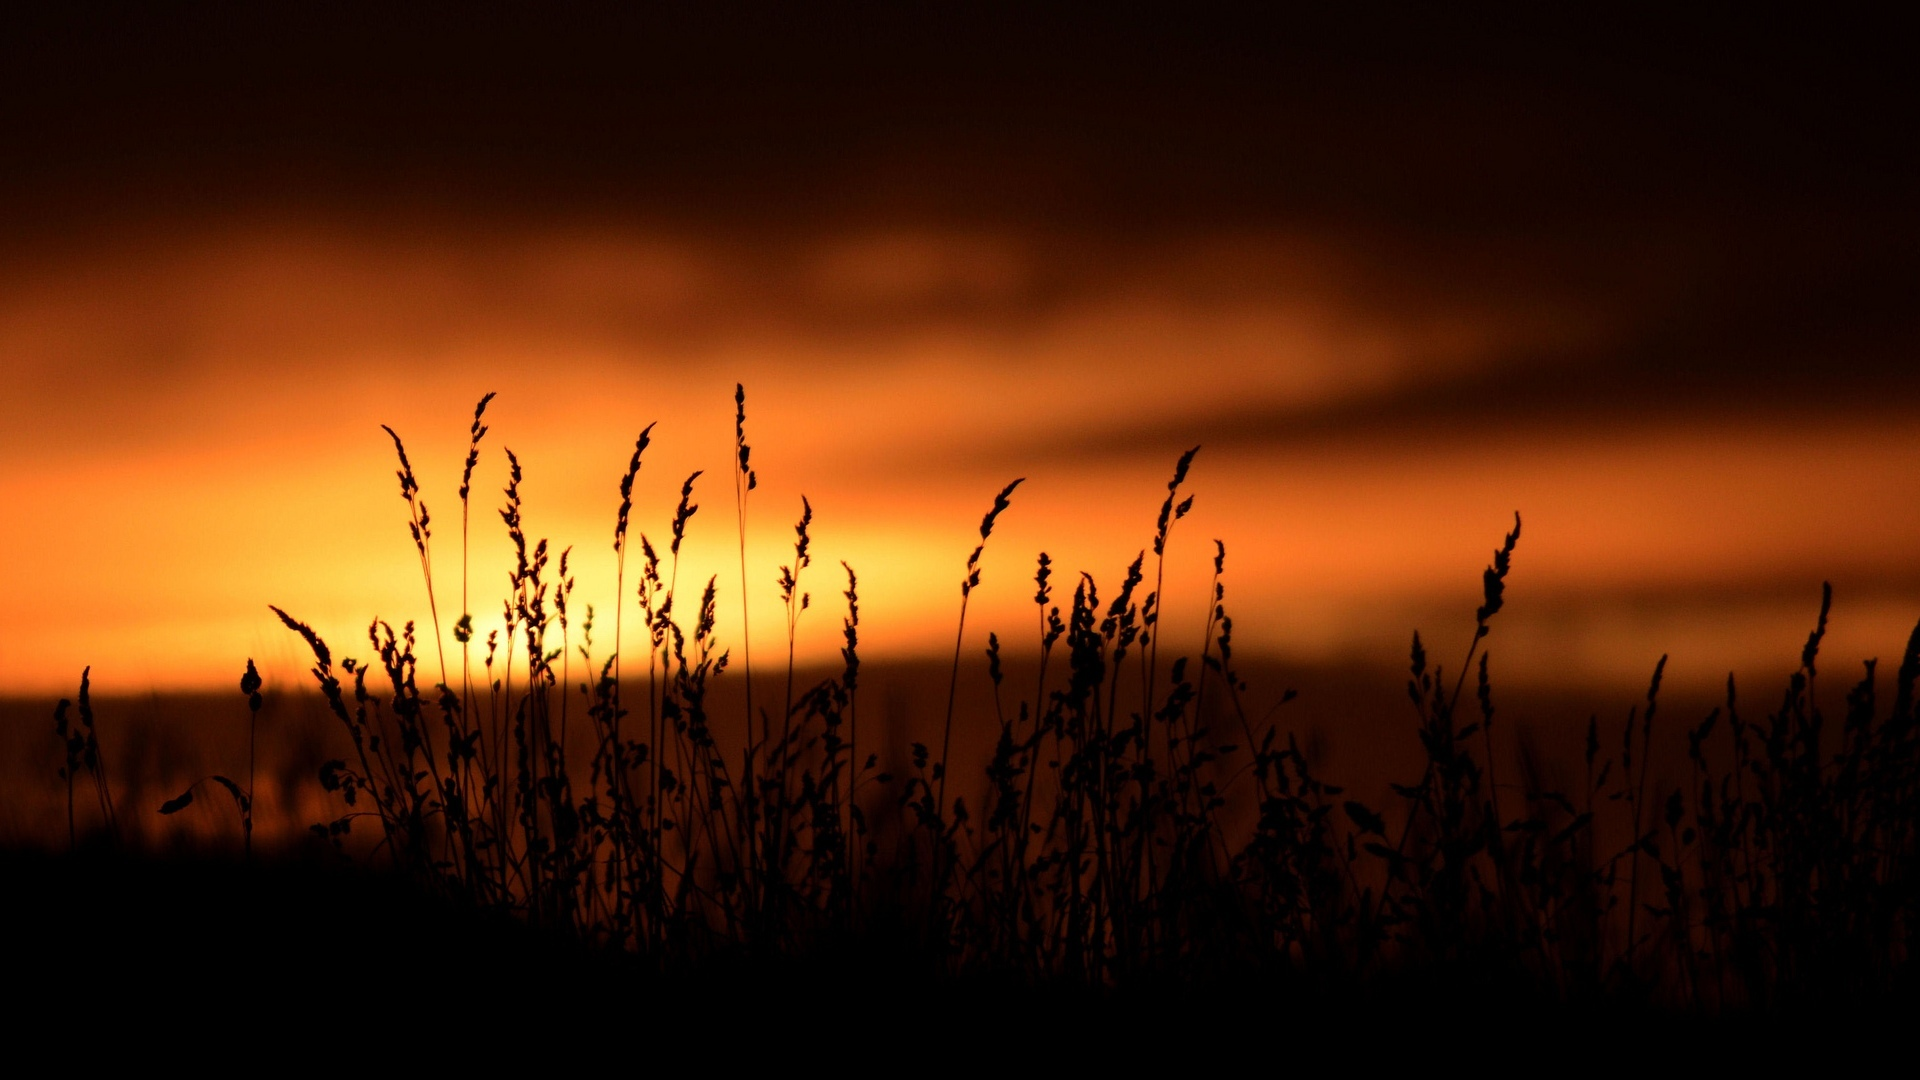 Field Grass With Sunset Background – Photography Wallpapers